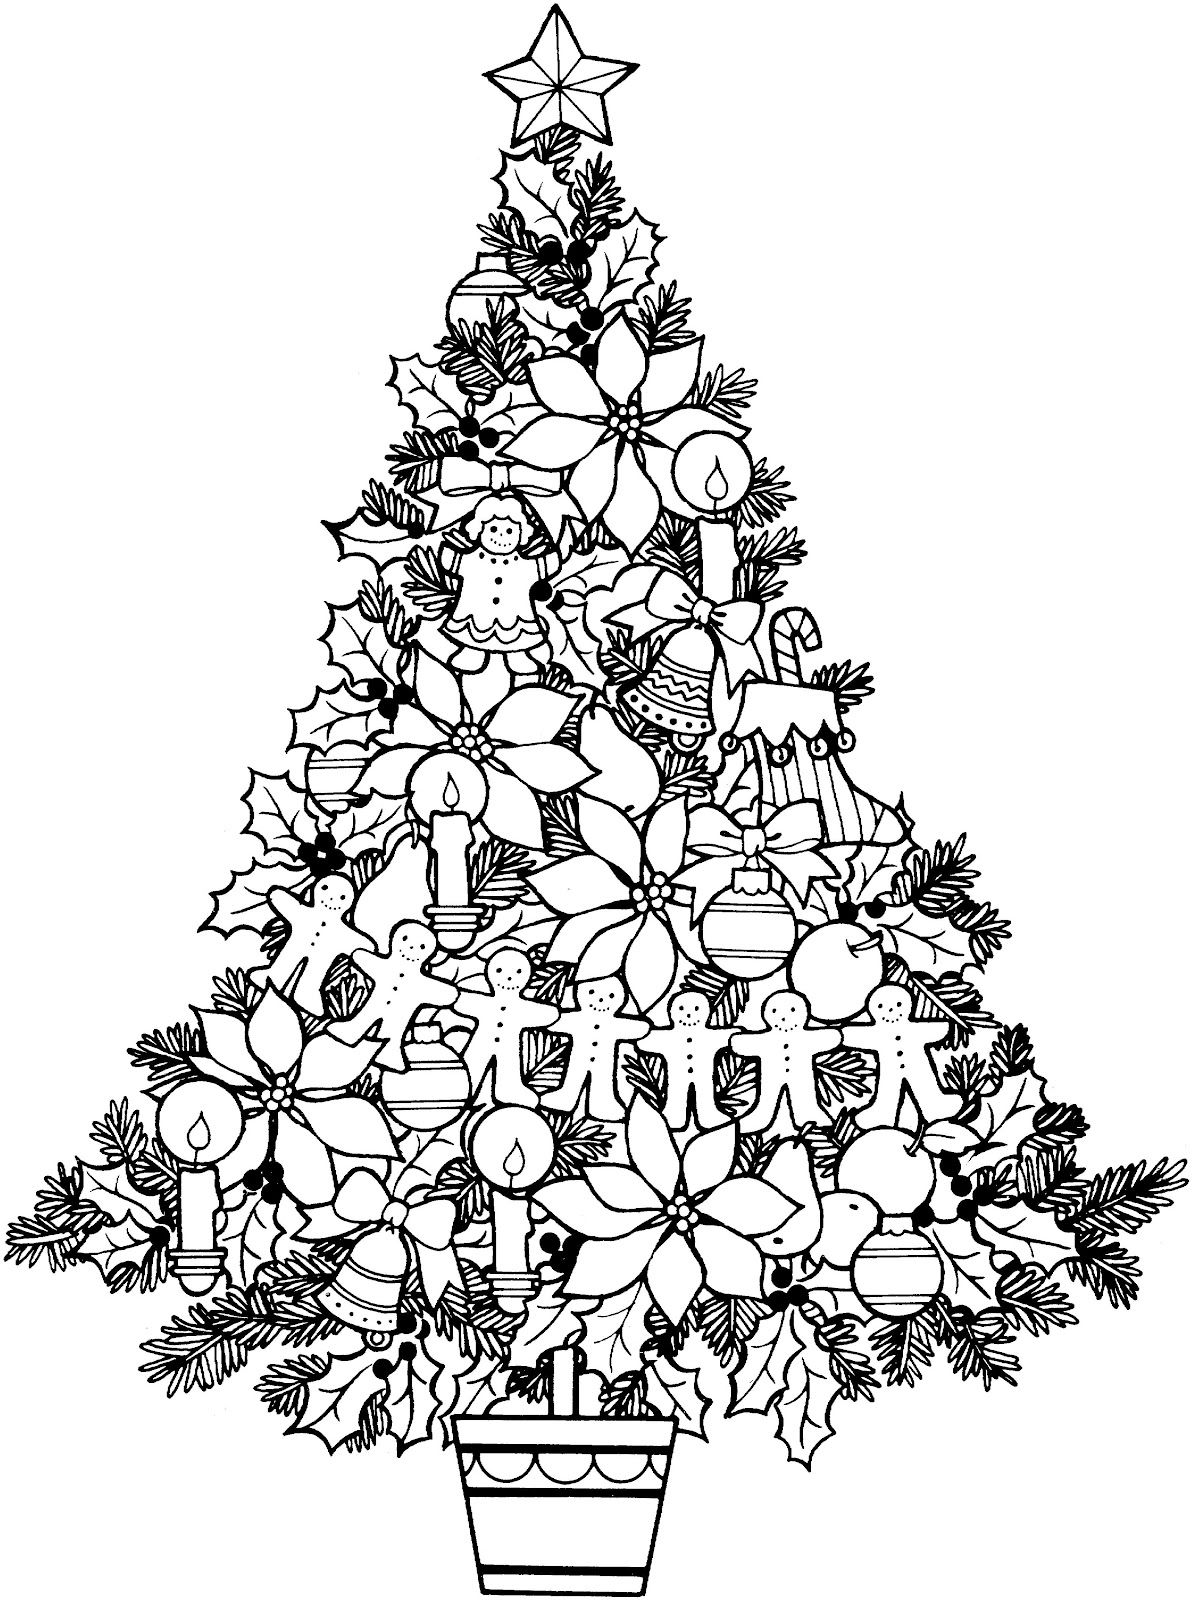 coloring christmas tree black and white christmas tree coloring pages for childrens printable for free christmas and coloring black white tree